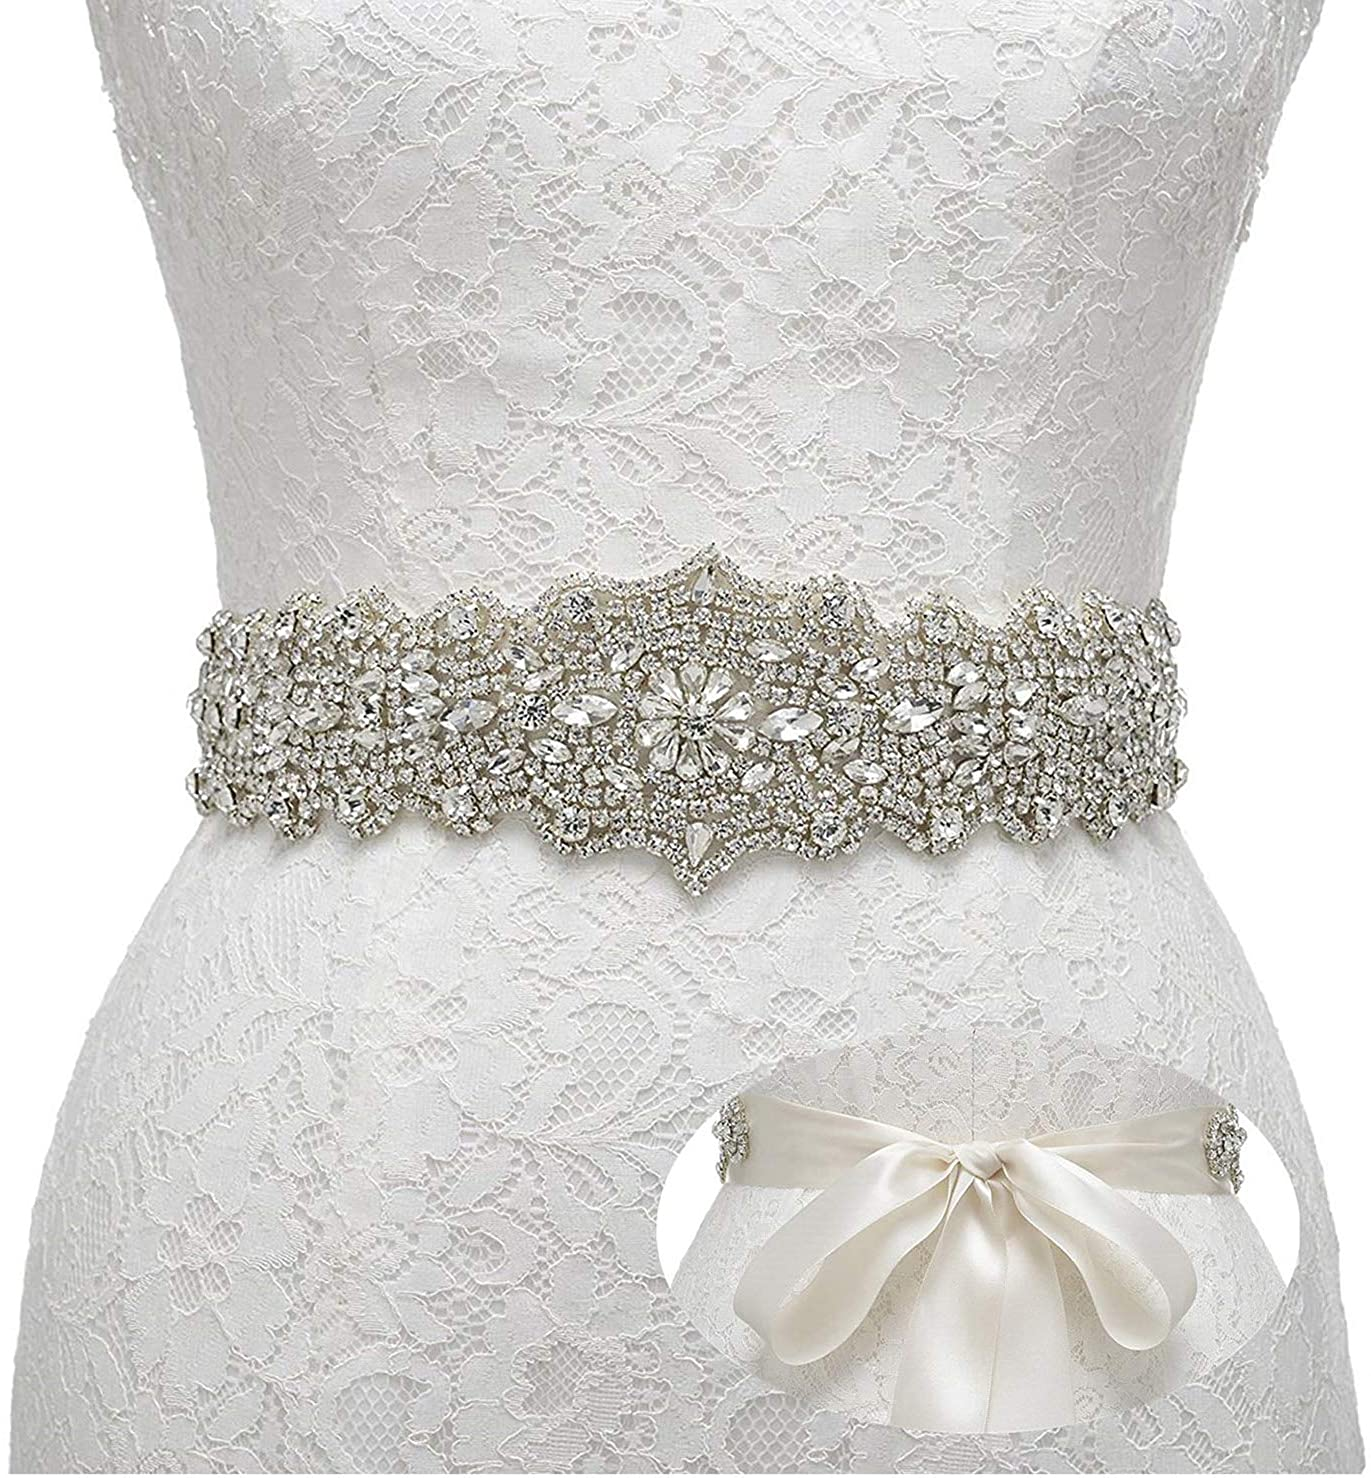 Remedios Rhinestone Bridal Belt Crystal Wedding Belt Bridesmaid Sash Women Dress Accessories